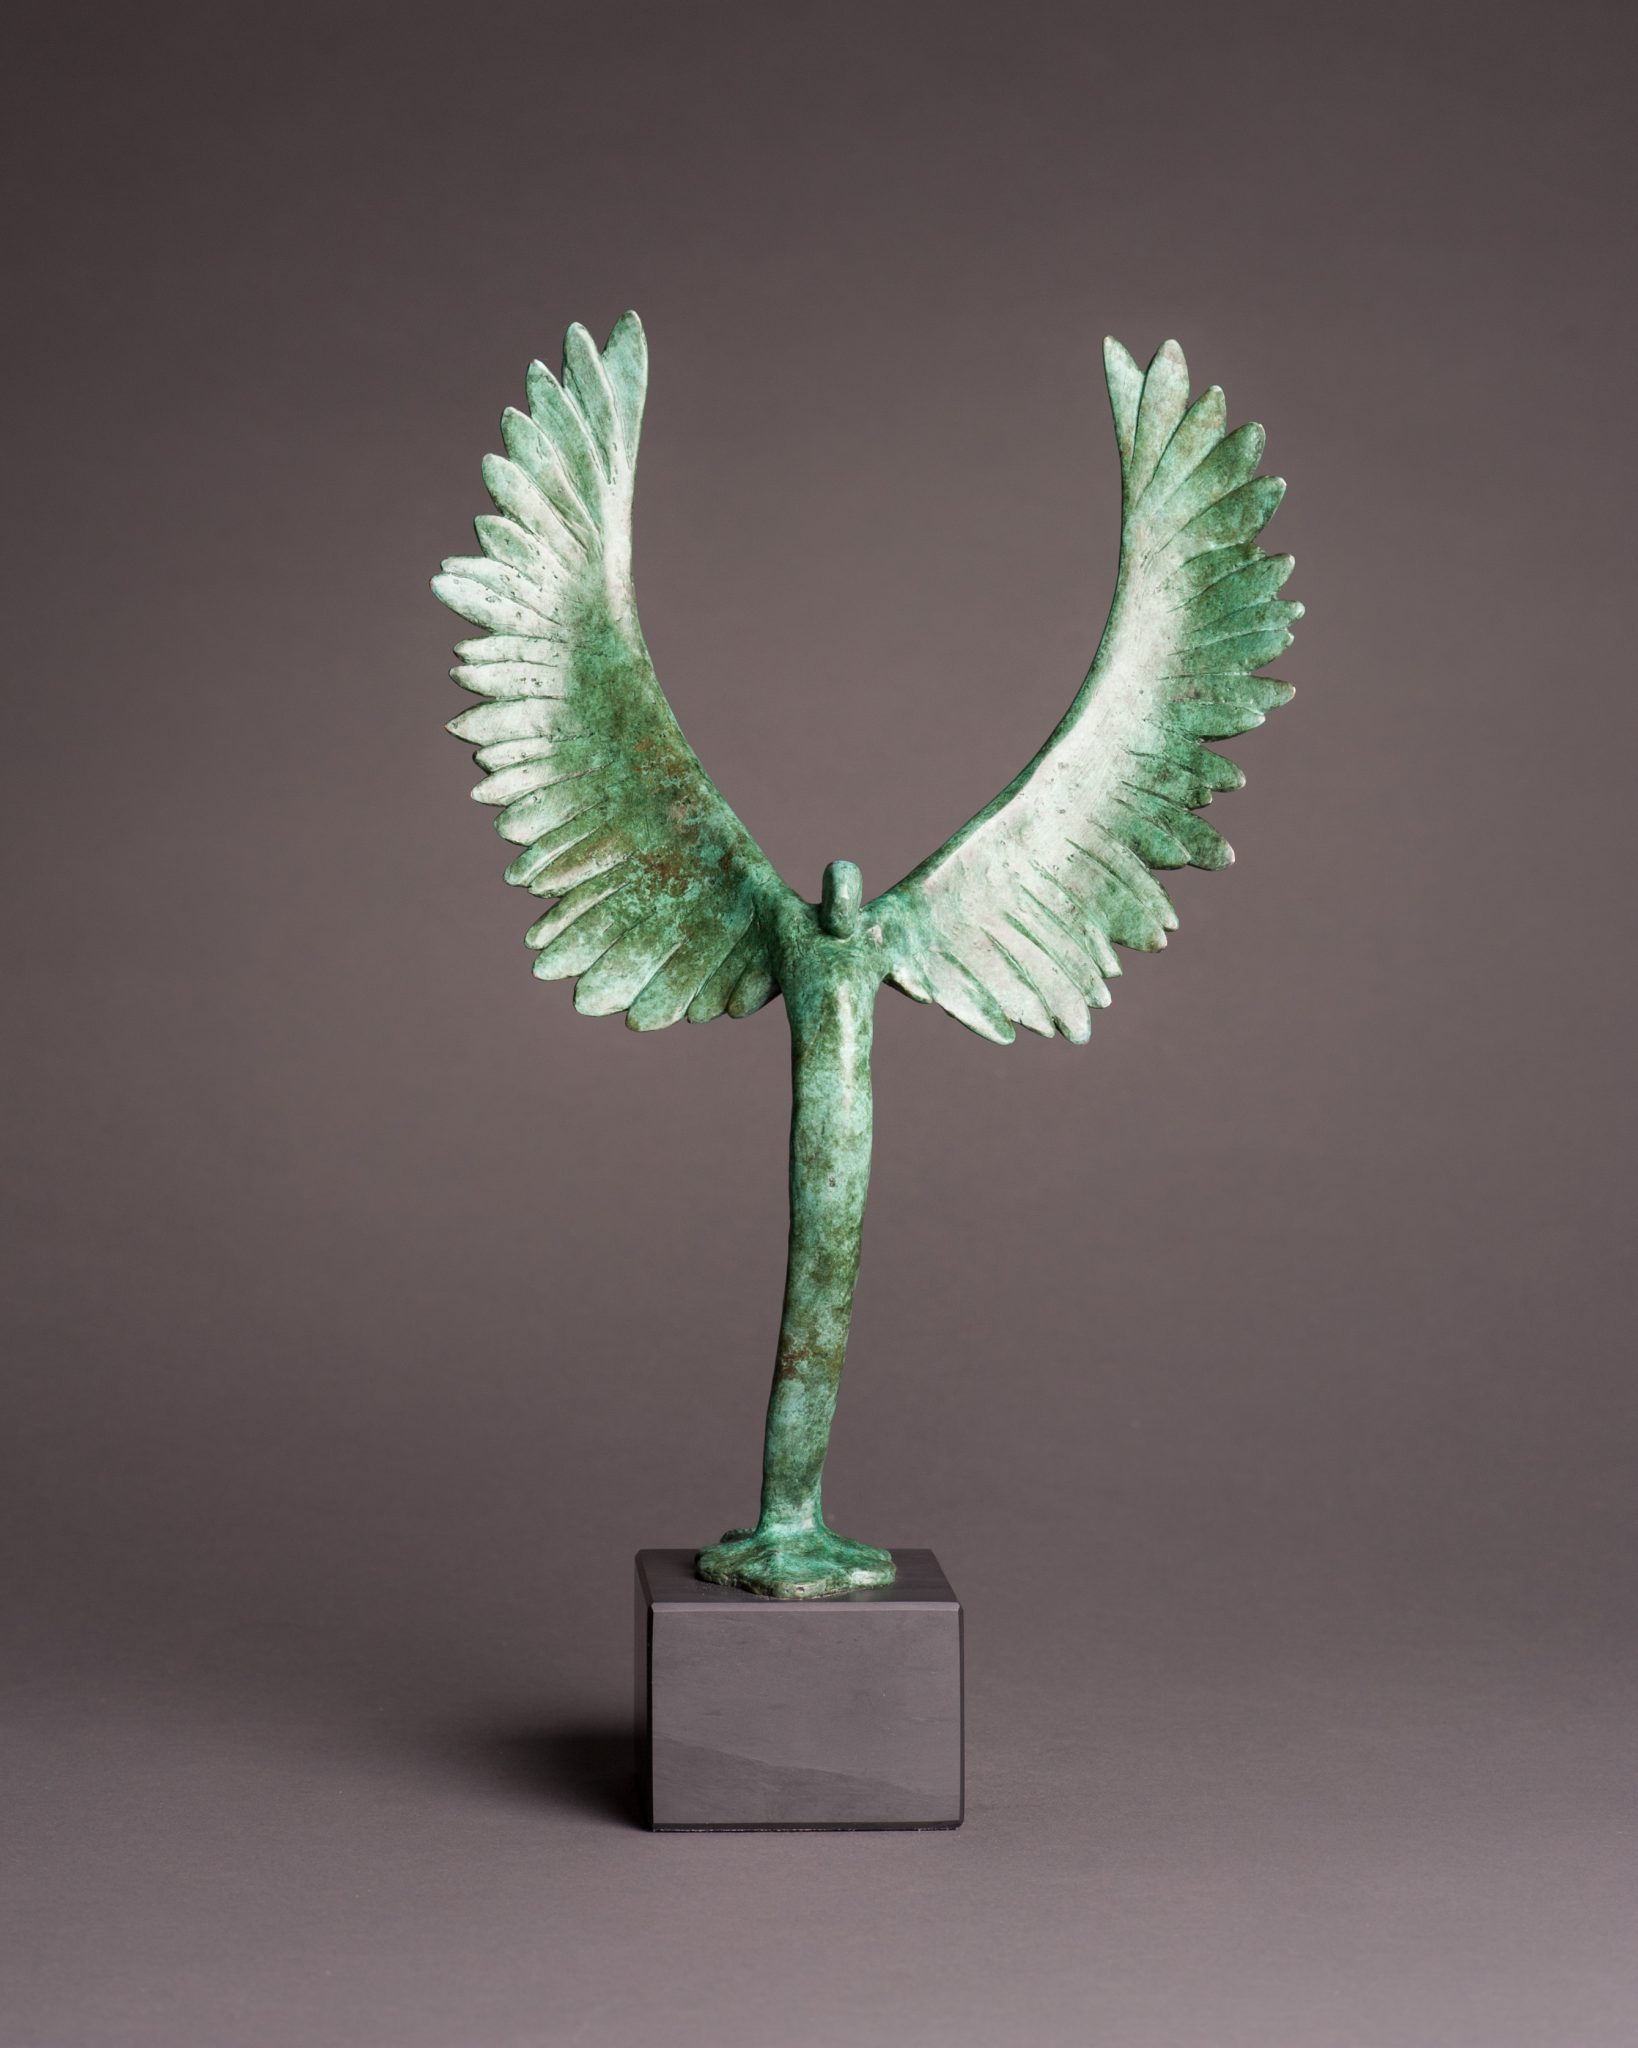 Green Swan trophy award for sustainability